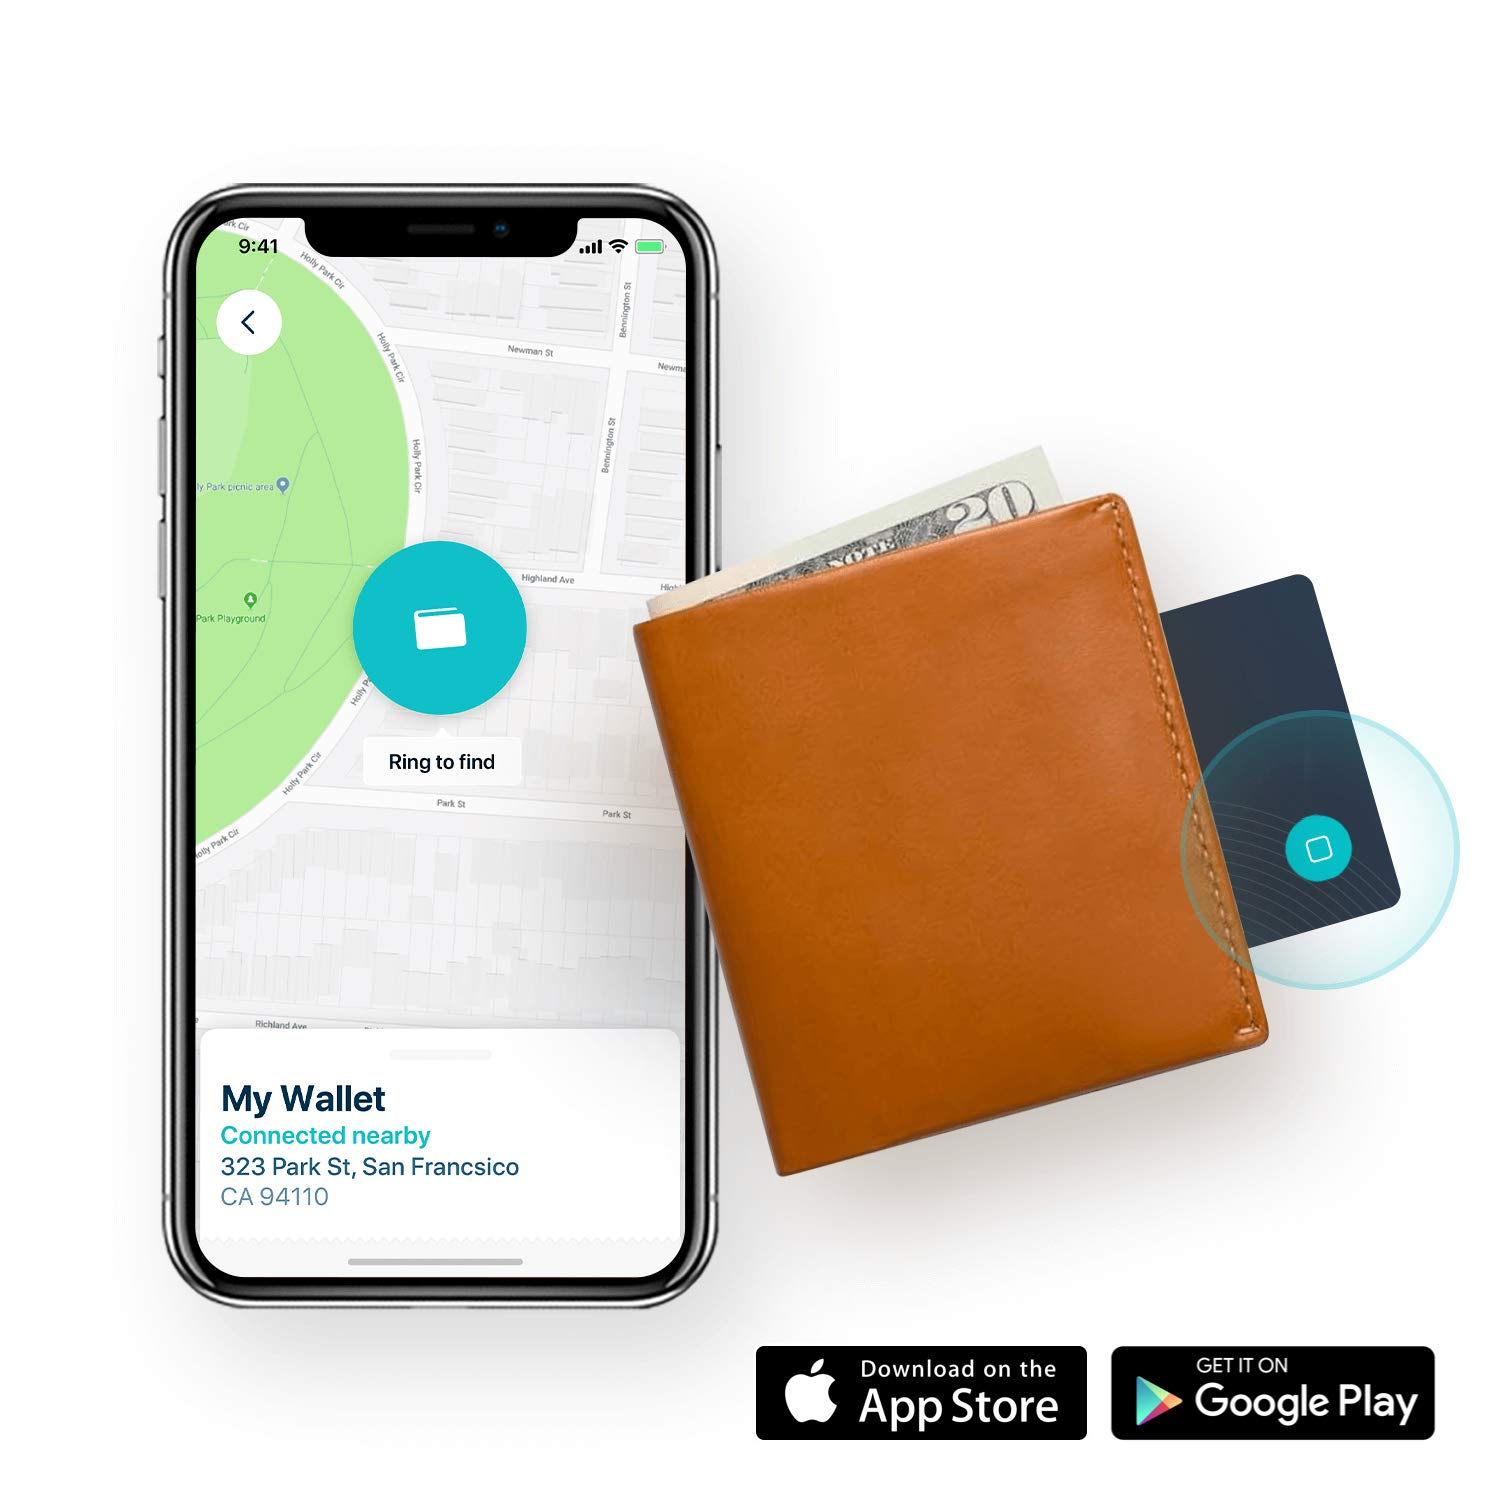 Wallet Free Companion App and Purse Safedome Recharge Bluetooth Tracking Card x 2 with Wireless Charging Pad Bag Water-Resistant and Rechargeable Slim Bluetooth Finder for Lost Phone